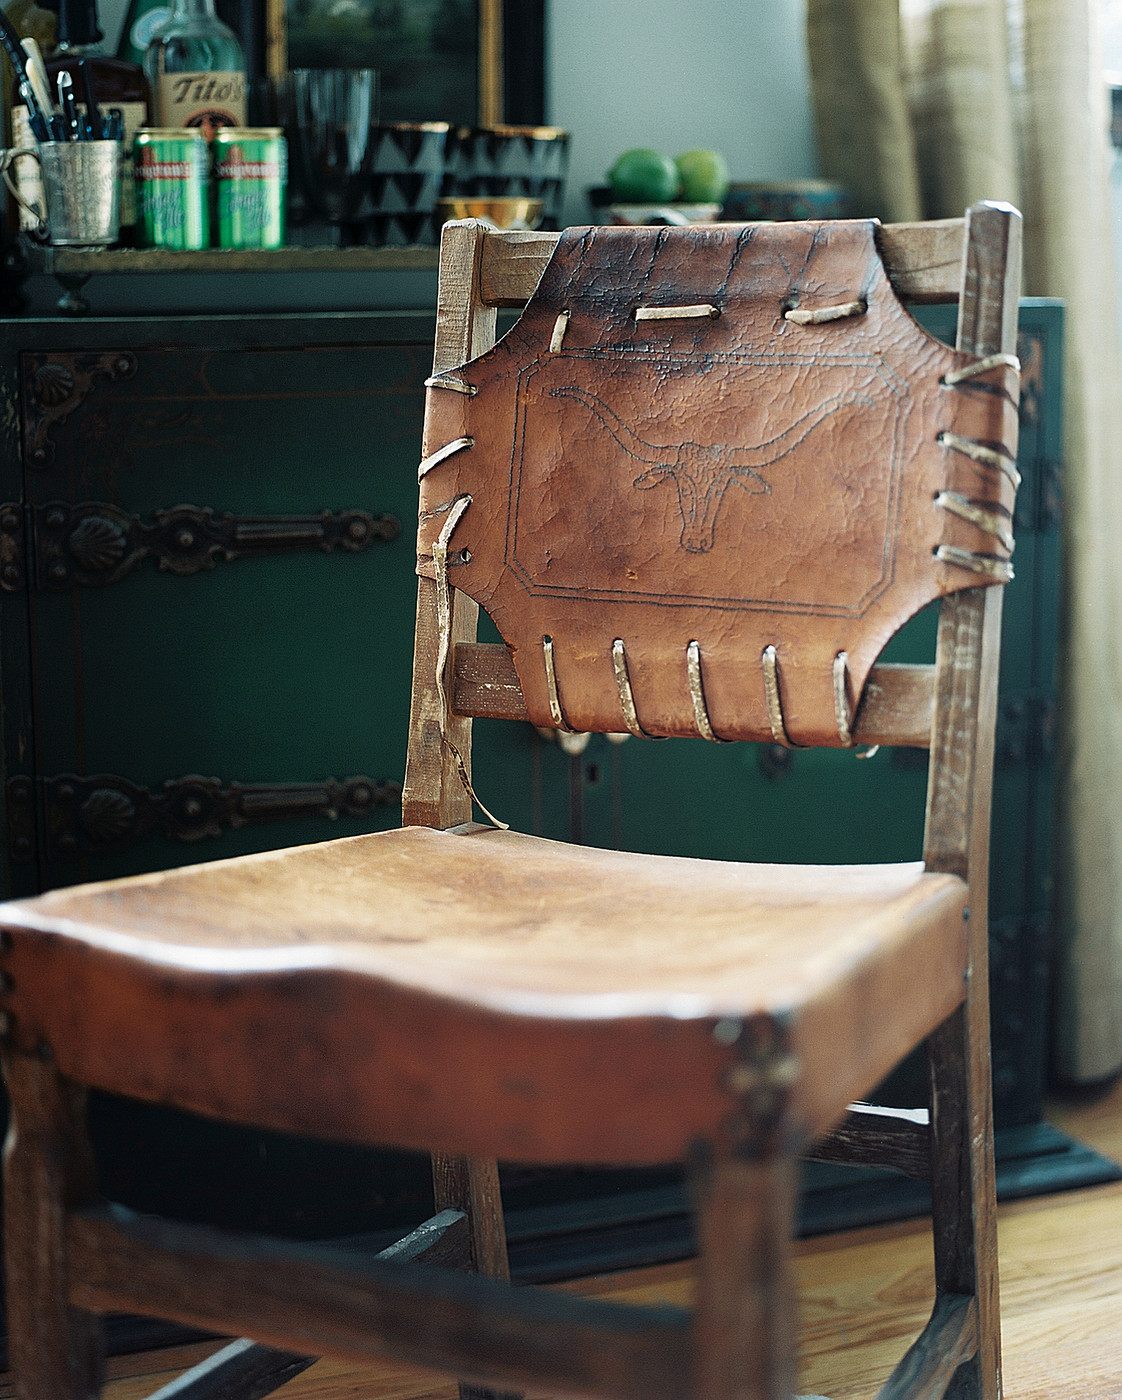 Leather And Wood Chair Photos, Design, Ideas, Remodel, And Decor   Lonny